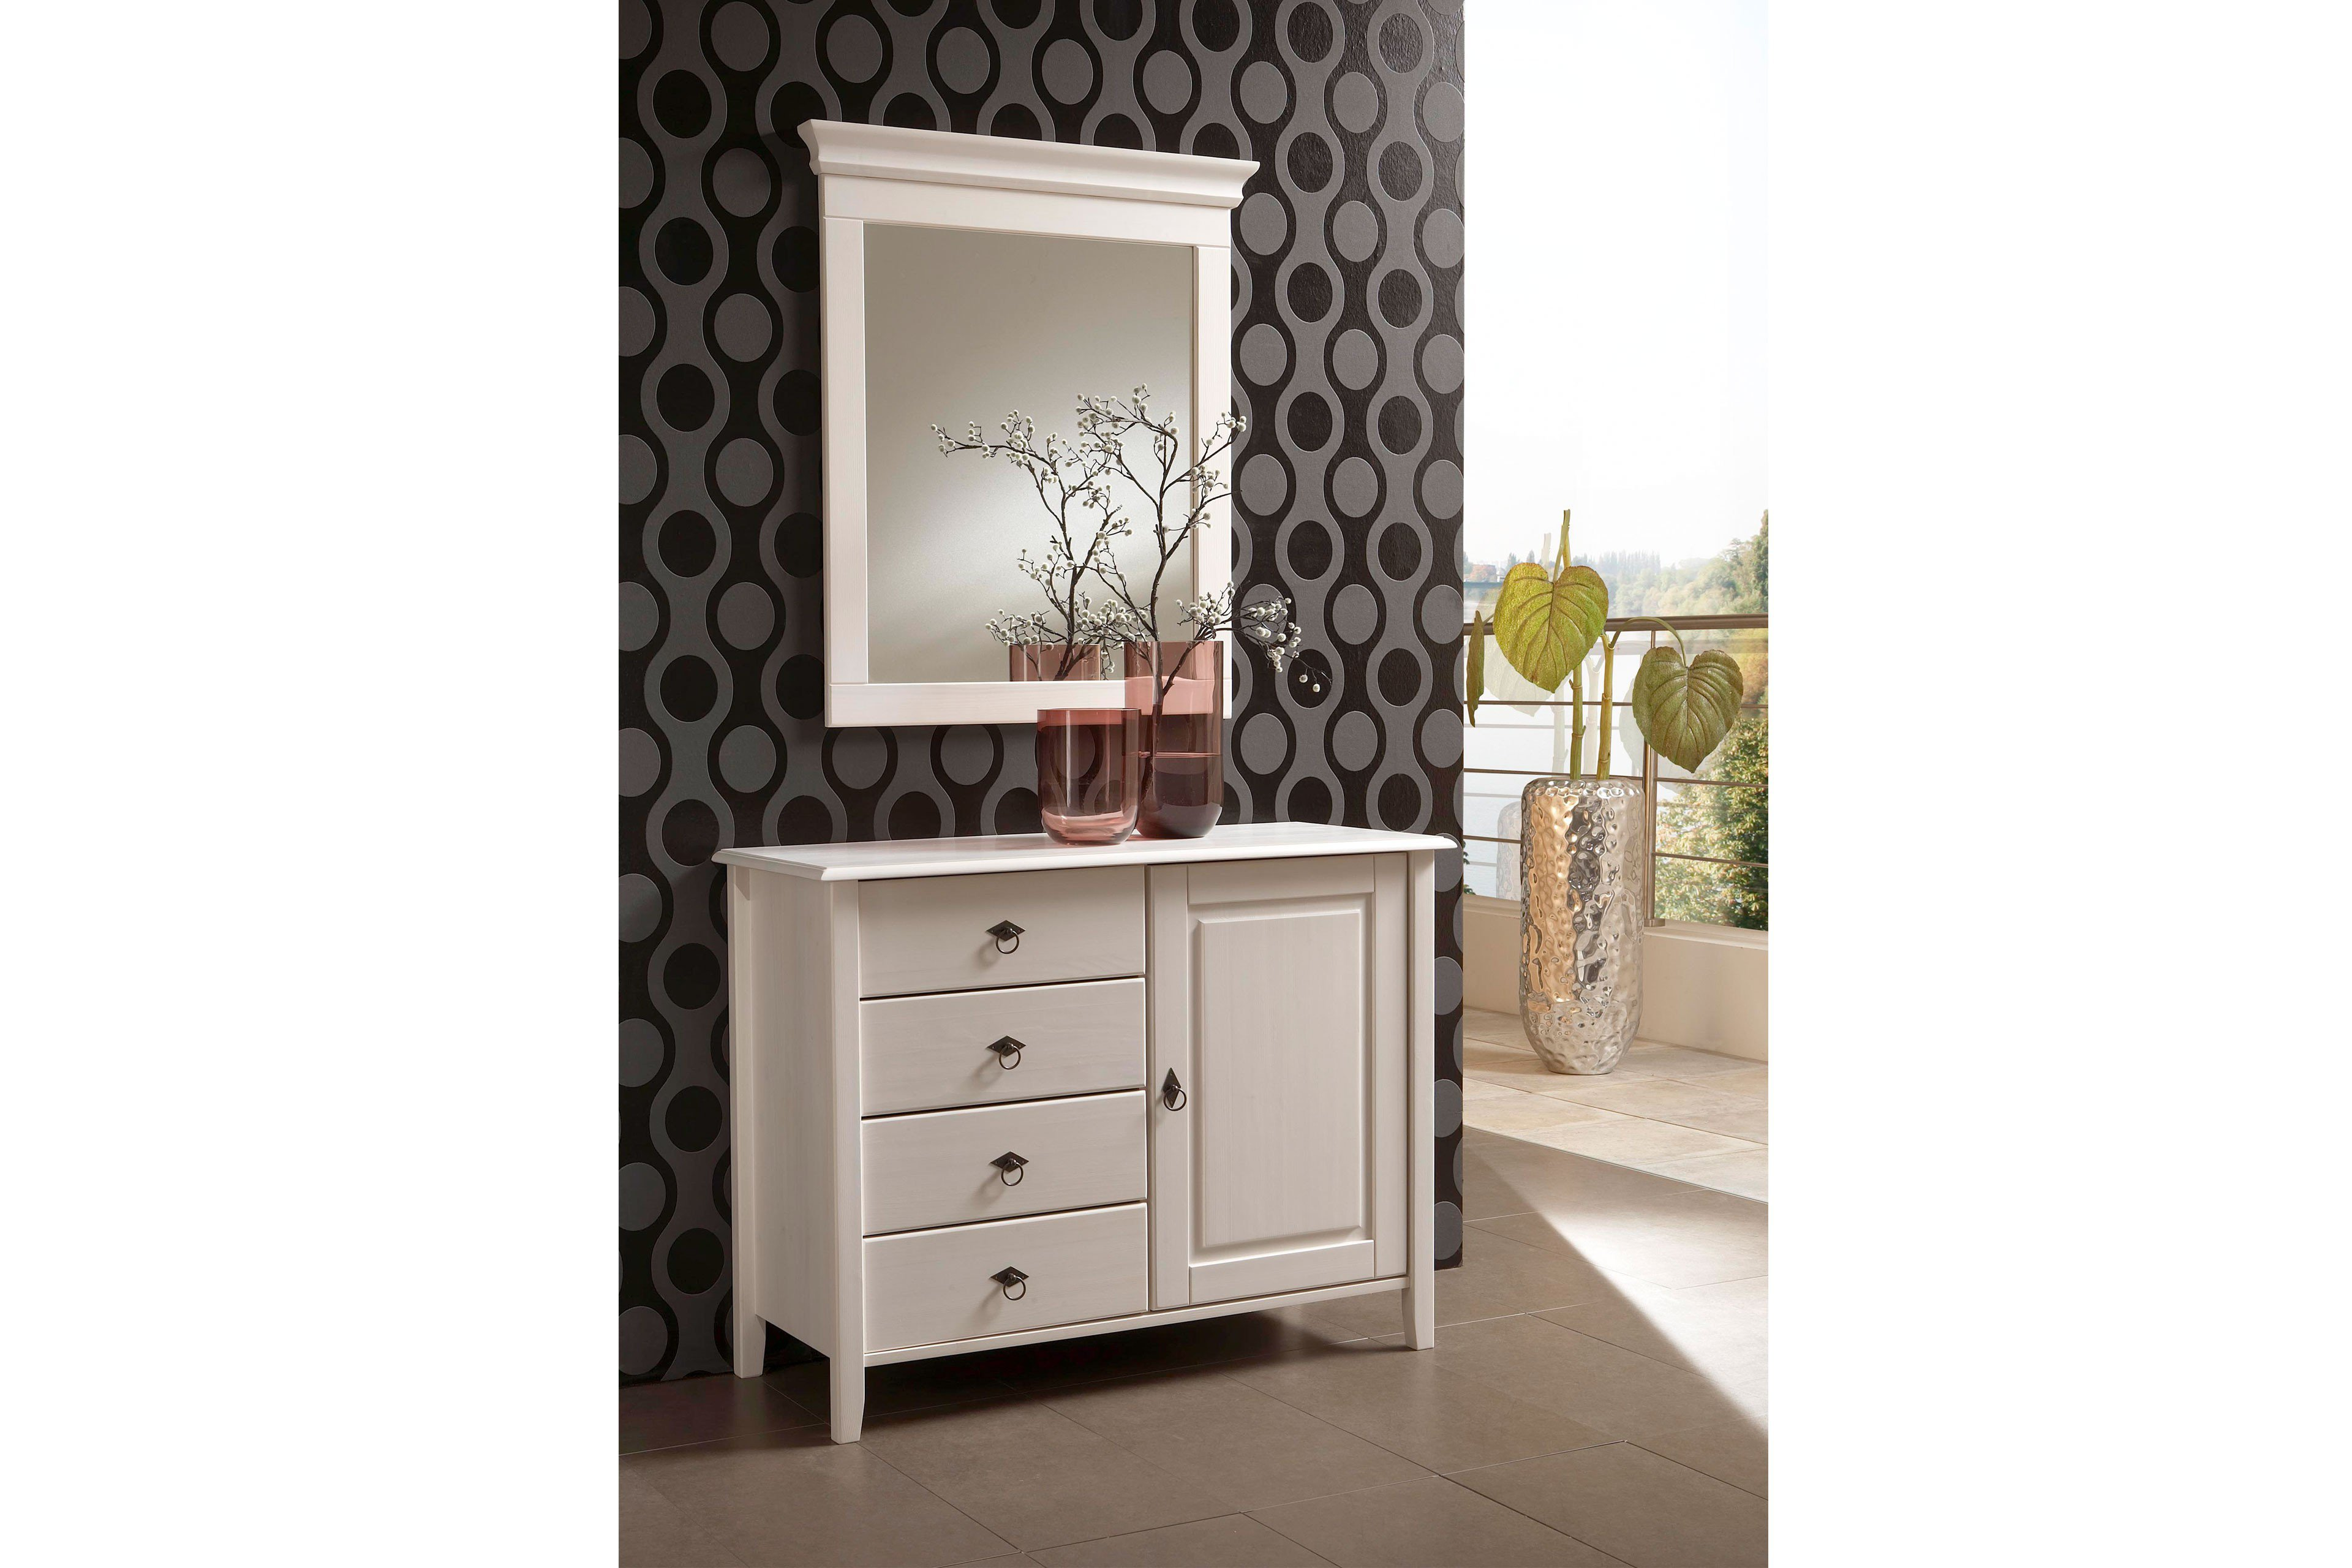 2 wahl mbel online shop fr with 2 wahl mbel online shop interesting wandtattoo wohnraum. Black Bedroom Furniture Sets. Home Design Ideas